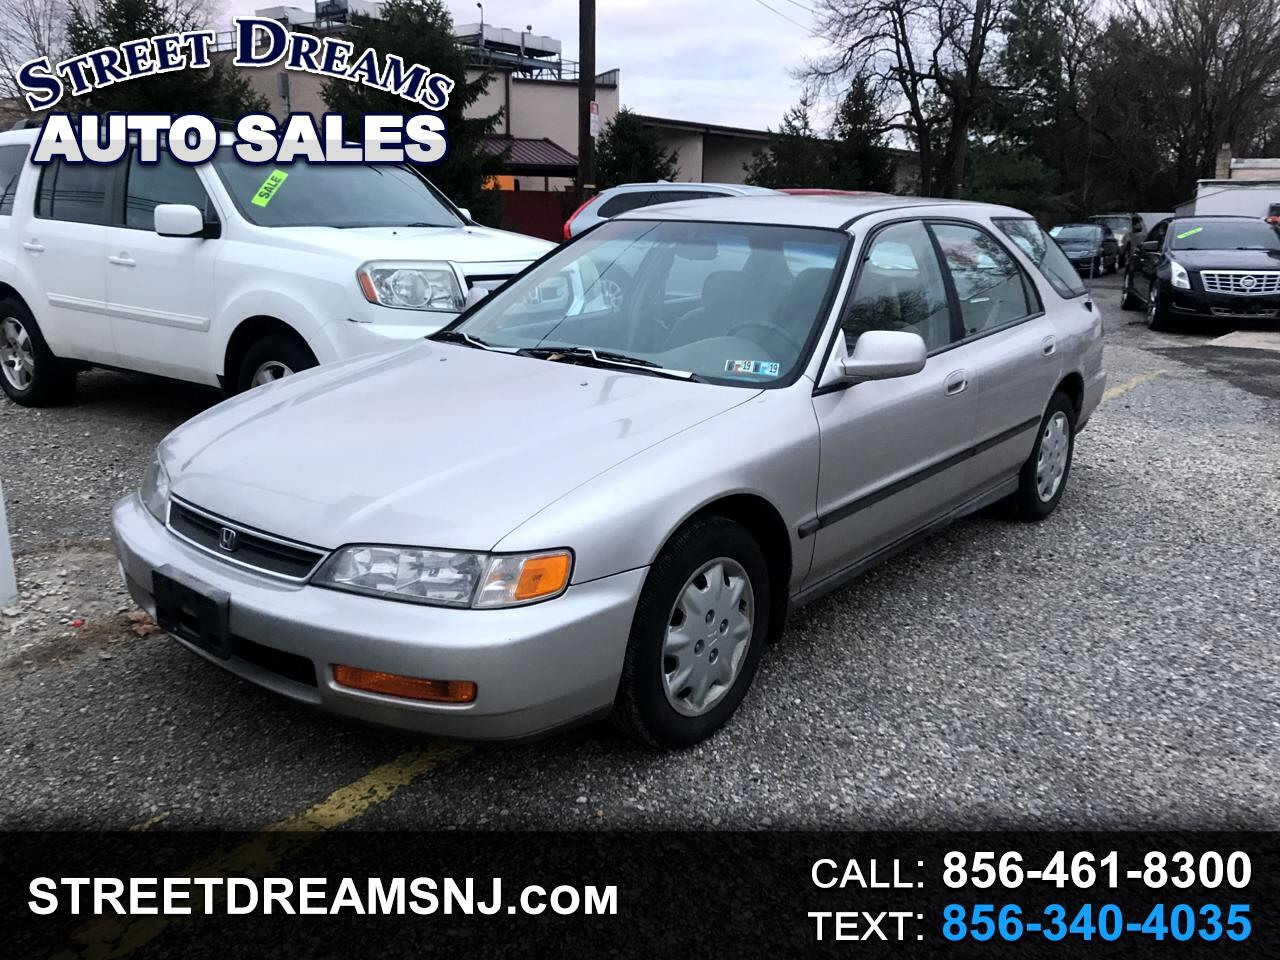 1997 Honda Accord Wagon LX